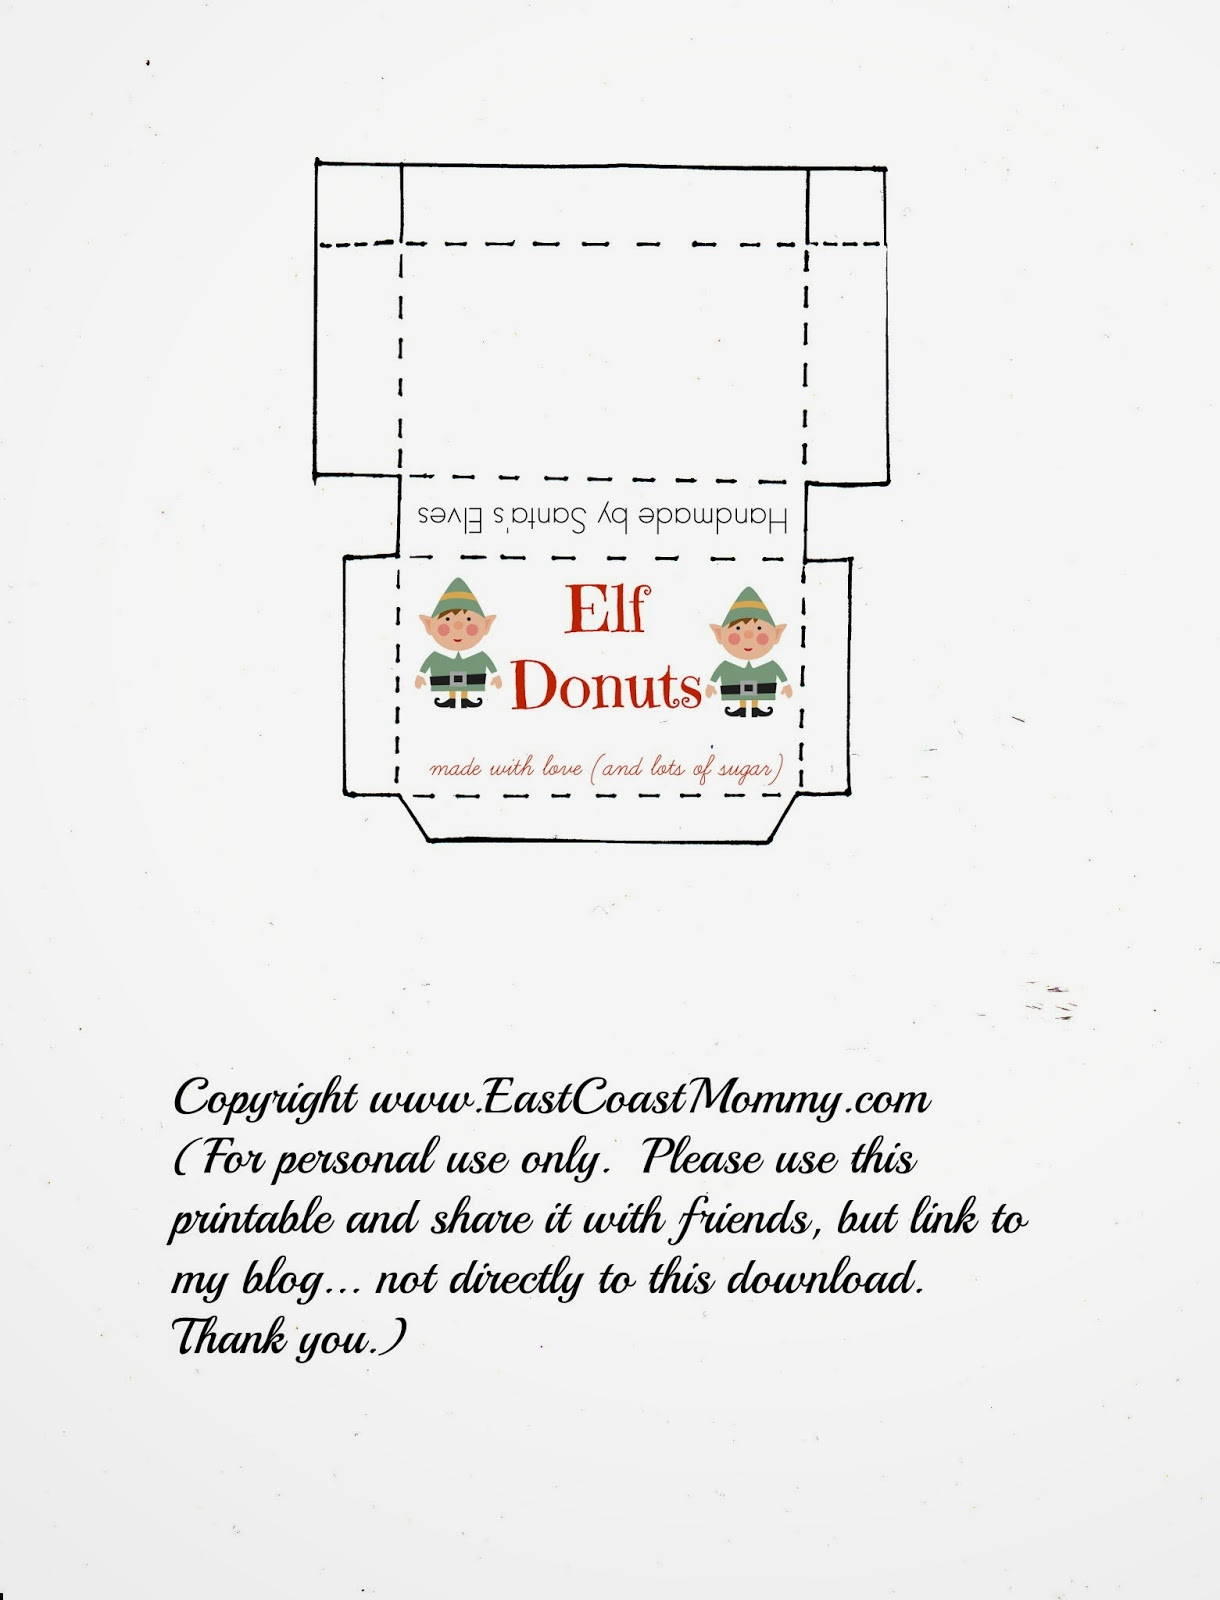 East Coast Mommy: Elf on the Shelf Donuts... free printable box